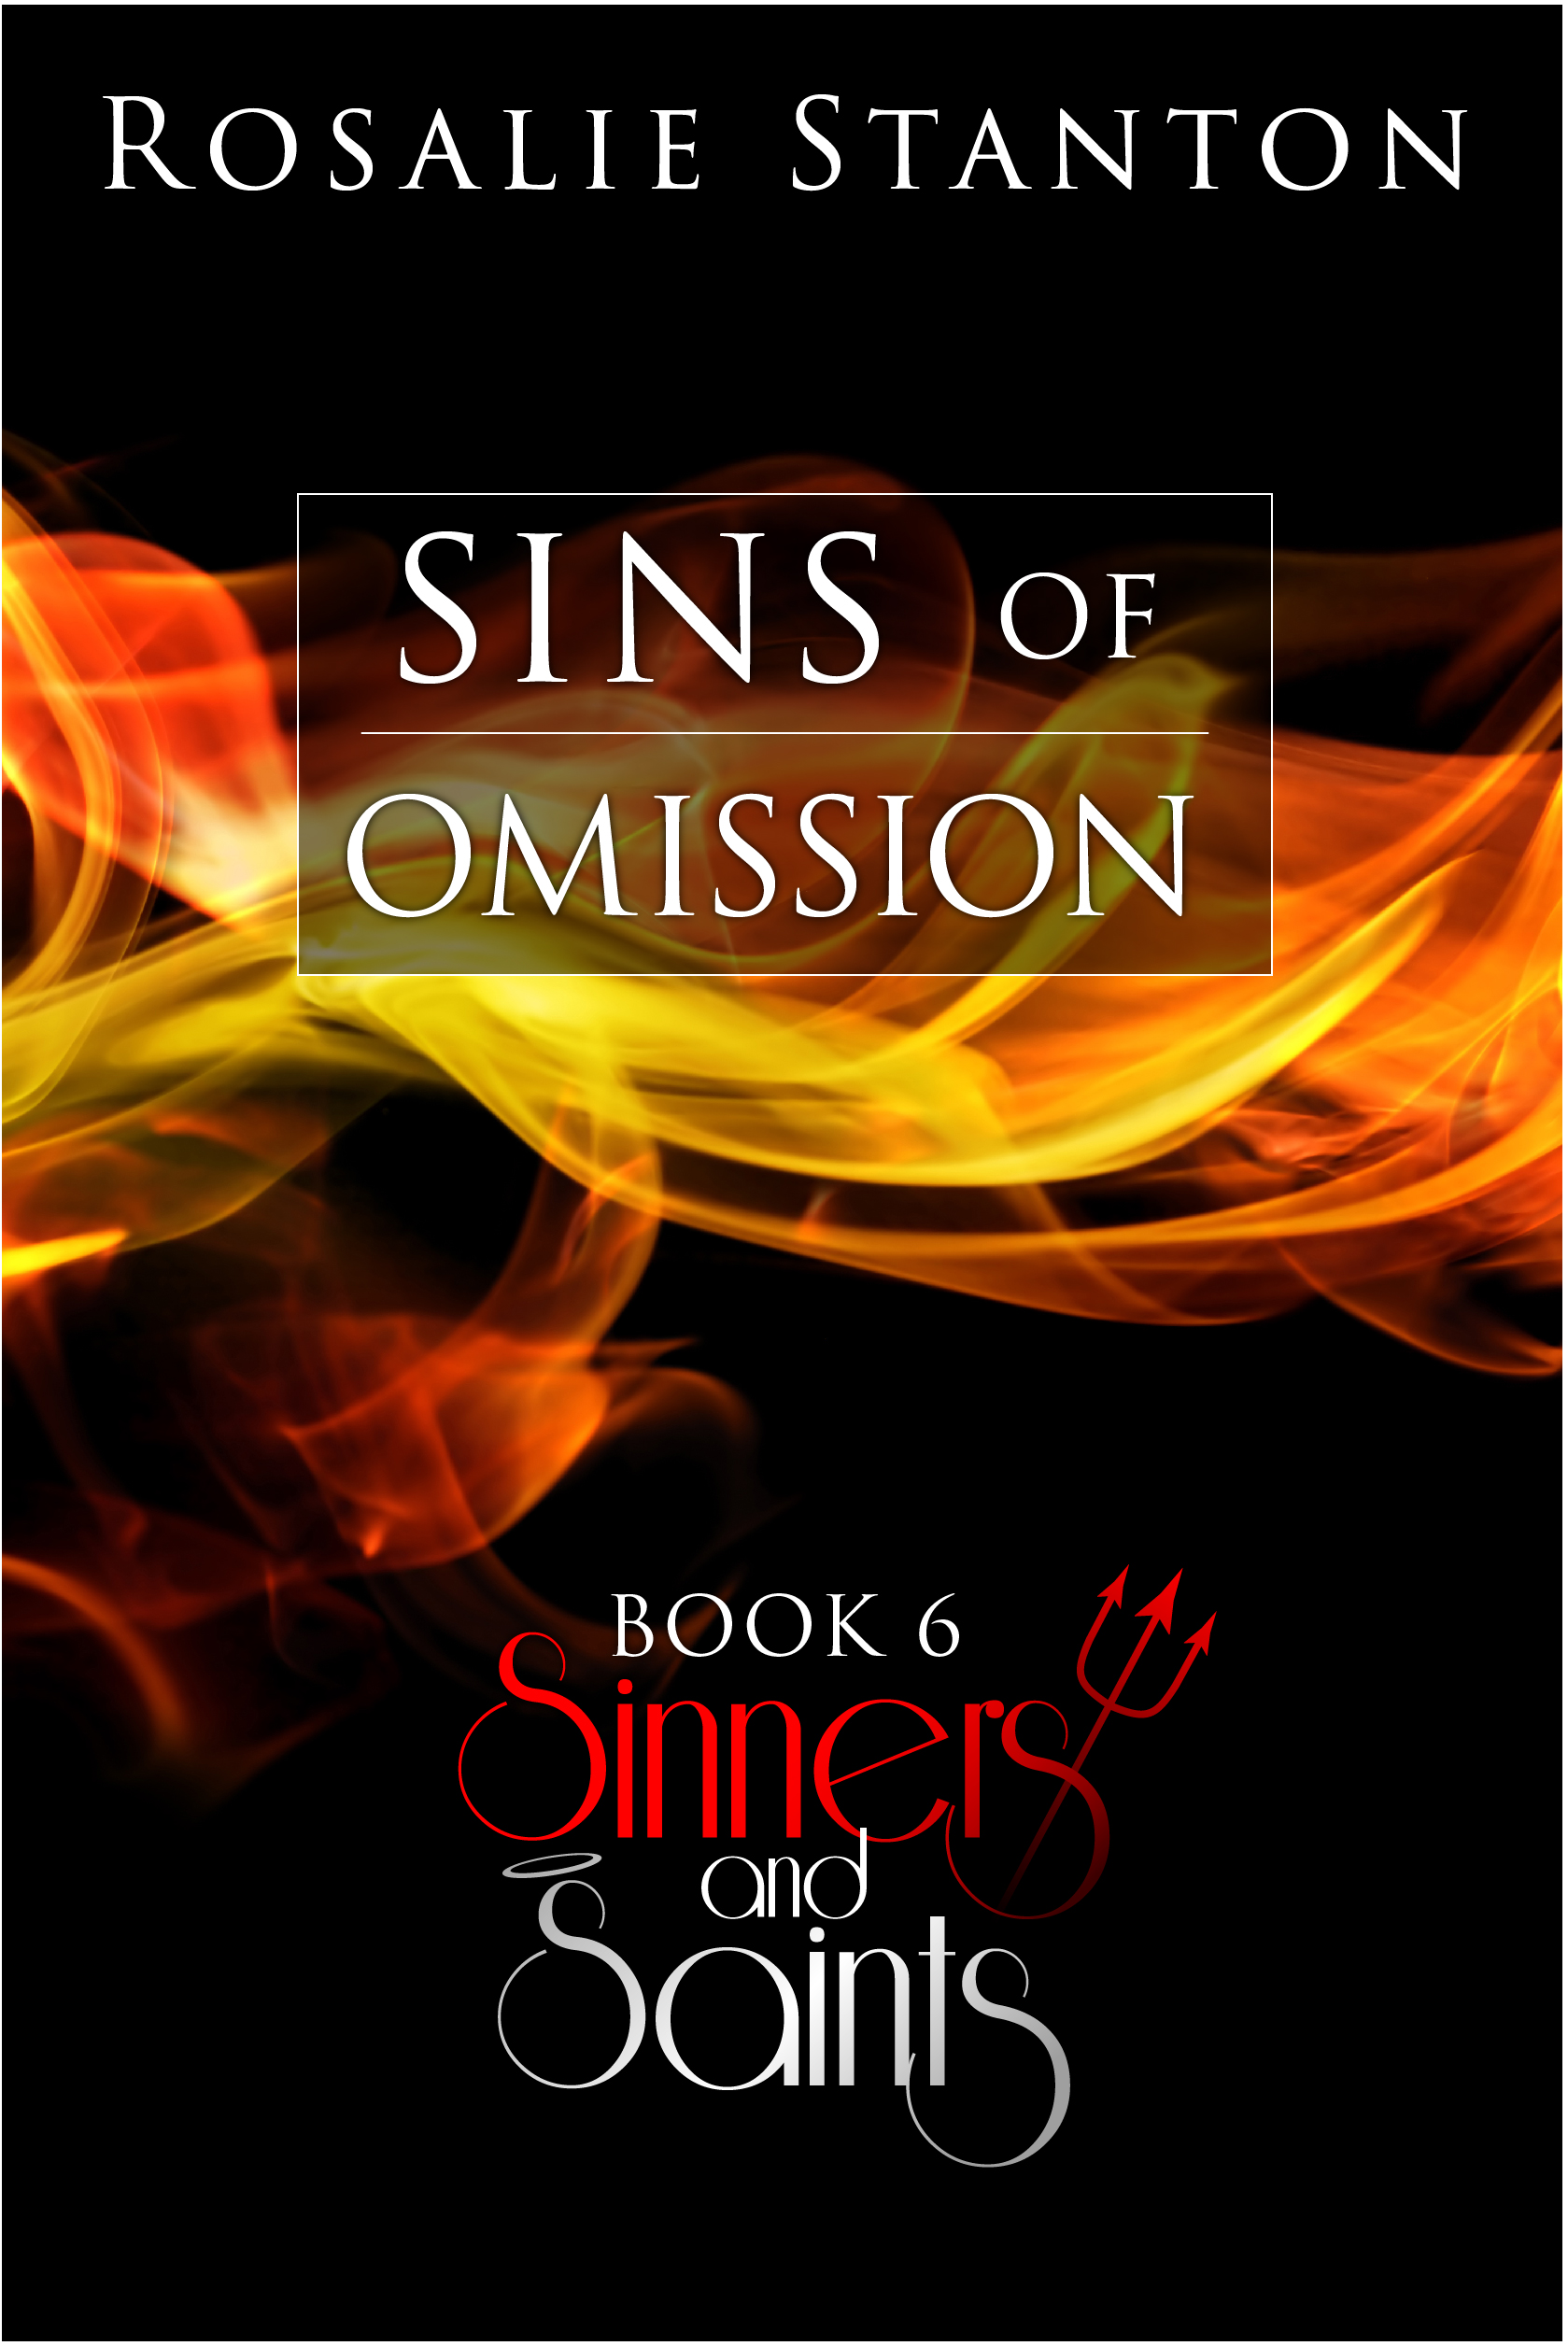 Gula, the Sin of Gluttony, is too smart to fall in love with an assignment. Or so he thought. Even worse? He's pretty sure she's the devil's mistress. When a new assignment puts her back in his life, he must decide if loyalty is worth the cost of love.